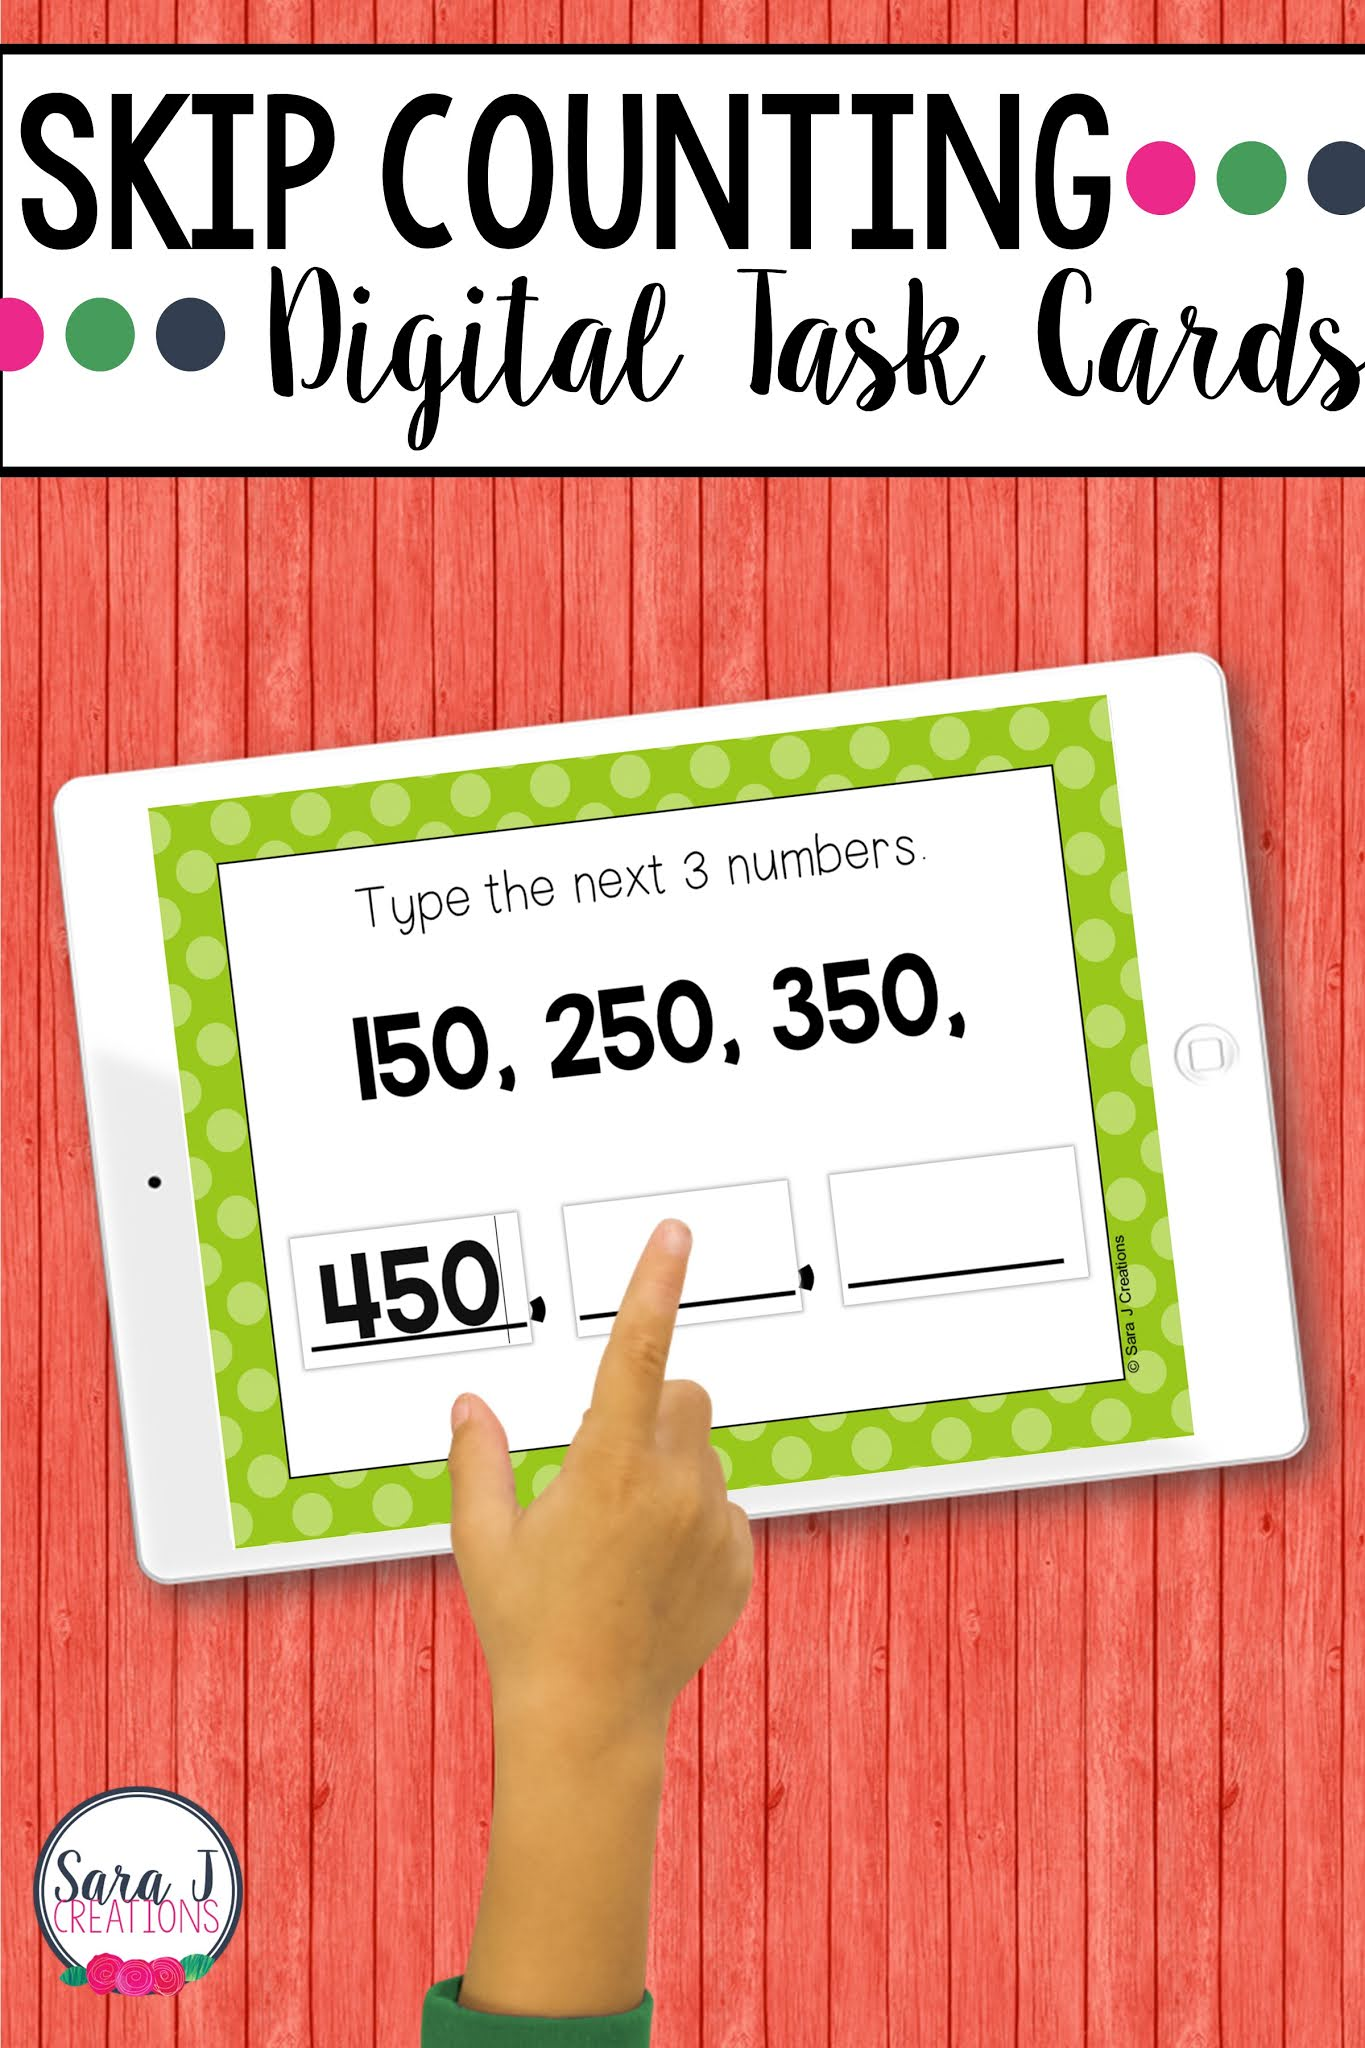 Make digital learning fun with these engaging, no prep Skip Counting Boom Cards. These digital task cards are perfect for remote learning but can also be used in a traditional classroom on devices such as ipads, tables, Chromebooks, smartboards, and more. Designed for 2nd grade, these place value task cards include numbers up to 1,000 and practice skip counting by 1, 5, 10 and 100..